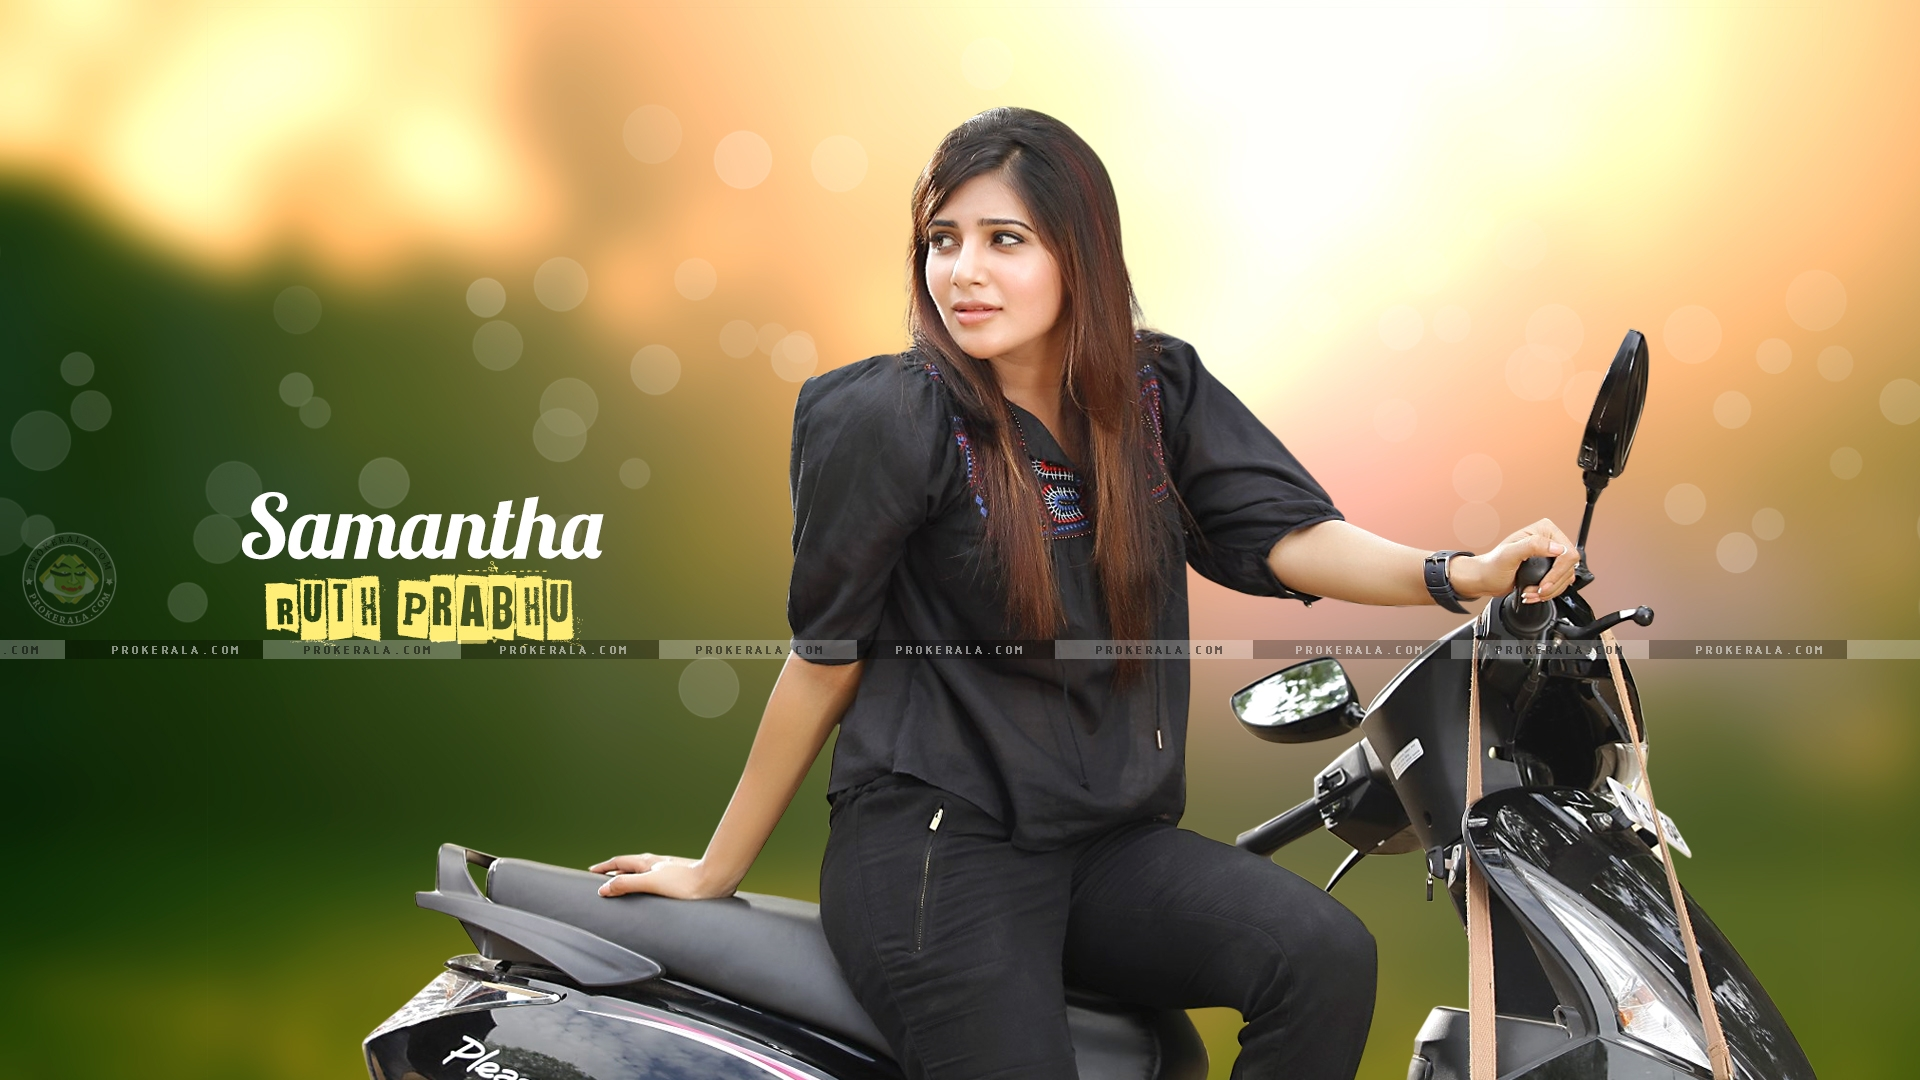 download samantha ruth prabhu wallpaper # 1 | hd samantha ruth